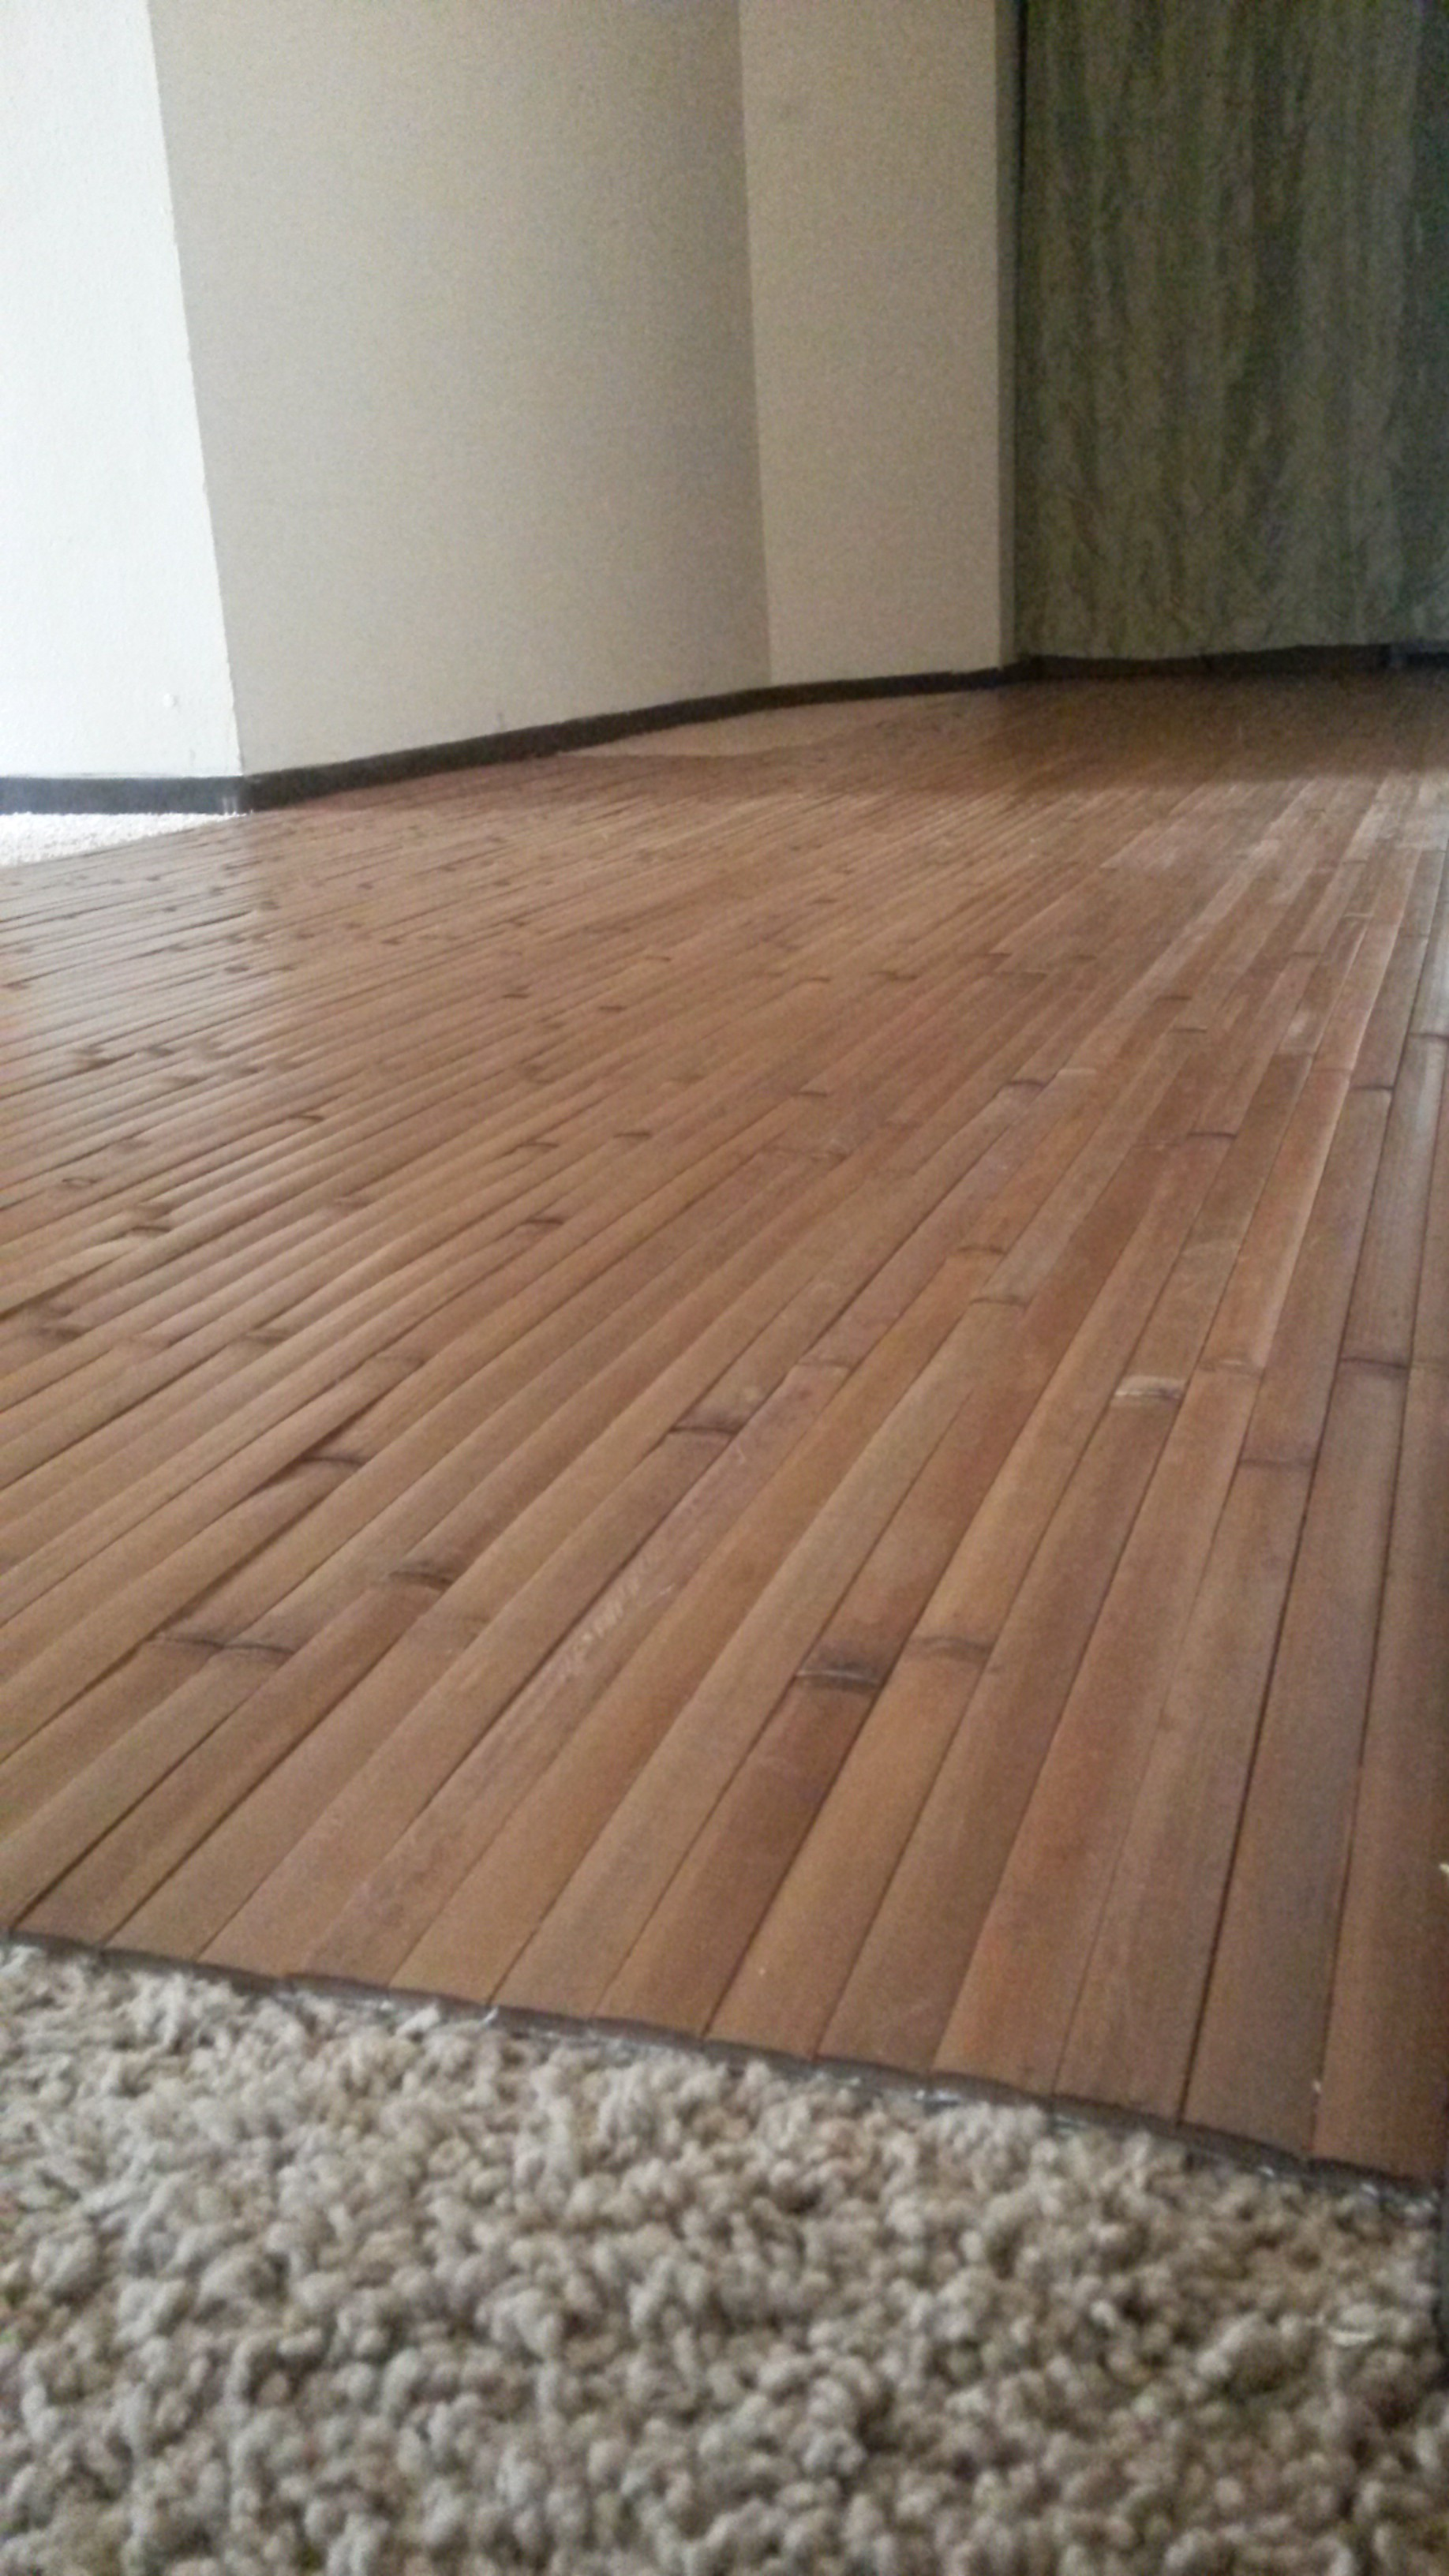 Best flooring over carpet solution ever skywaymom 8 x 4 bamboo wall panels make great flooring over carpet baanklon Images